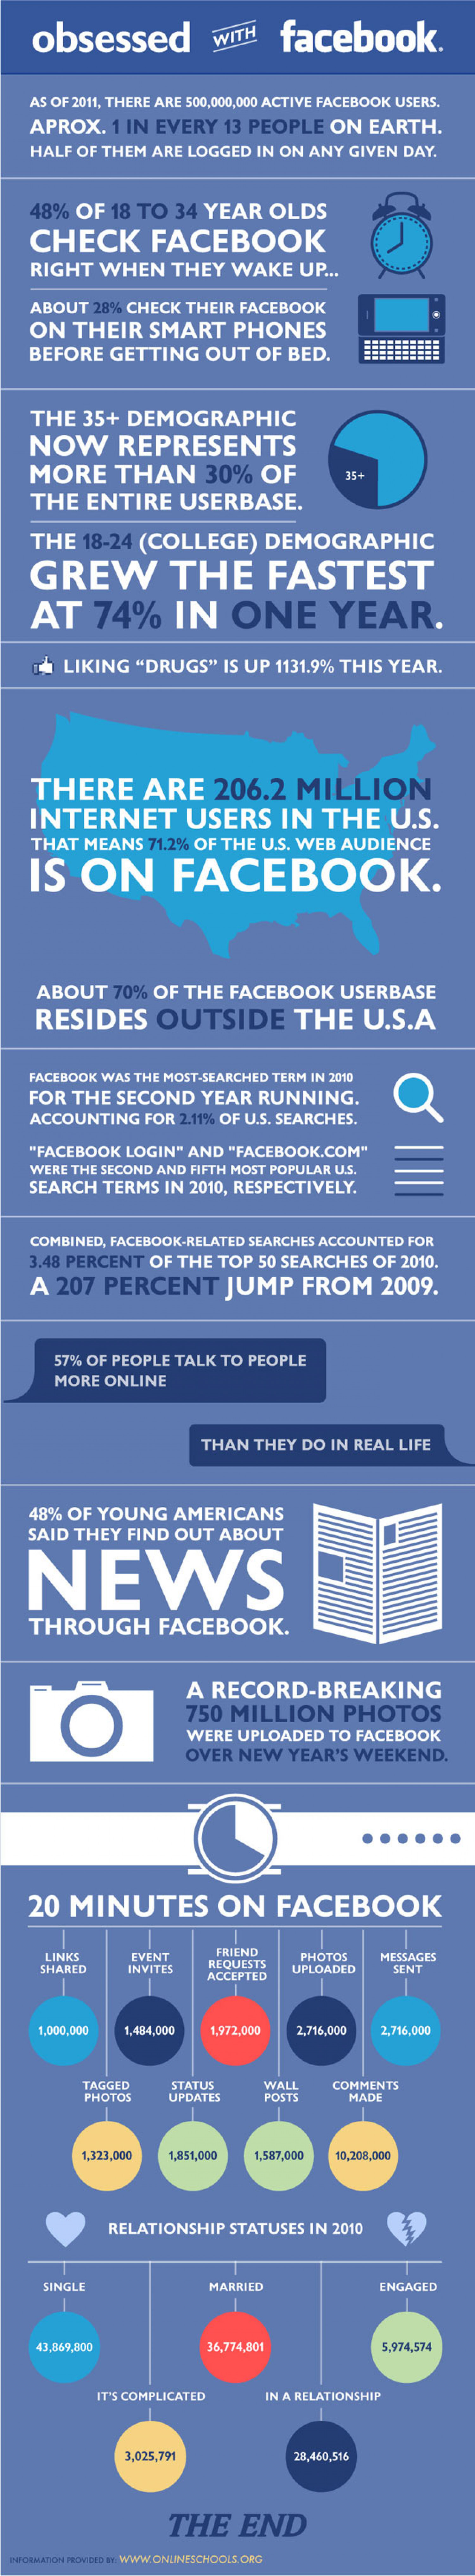 Are We Too Obsessed With Facebook? Infographic